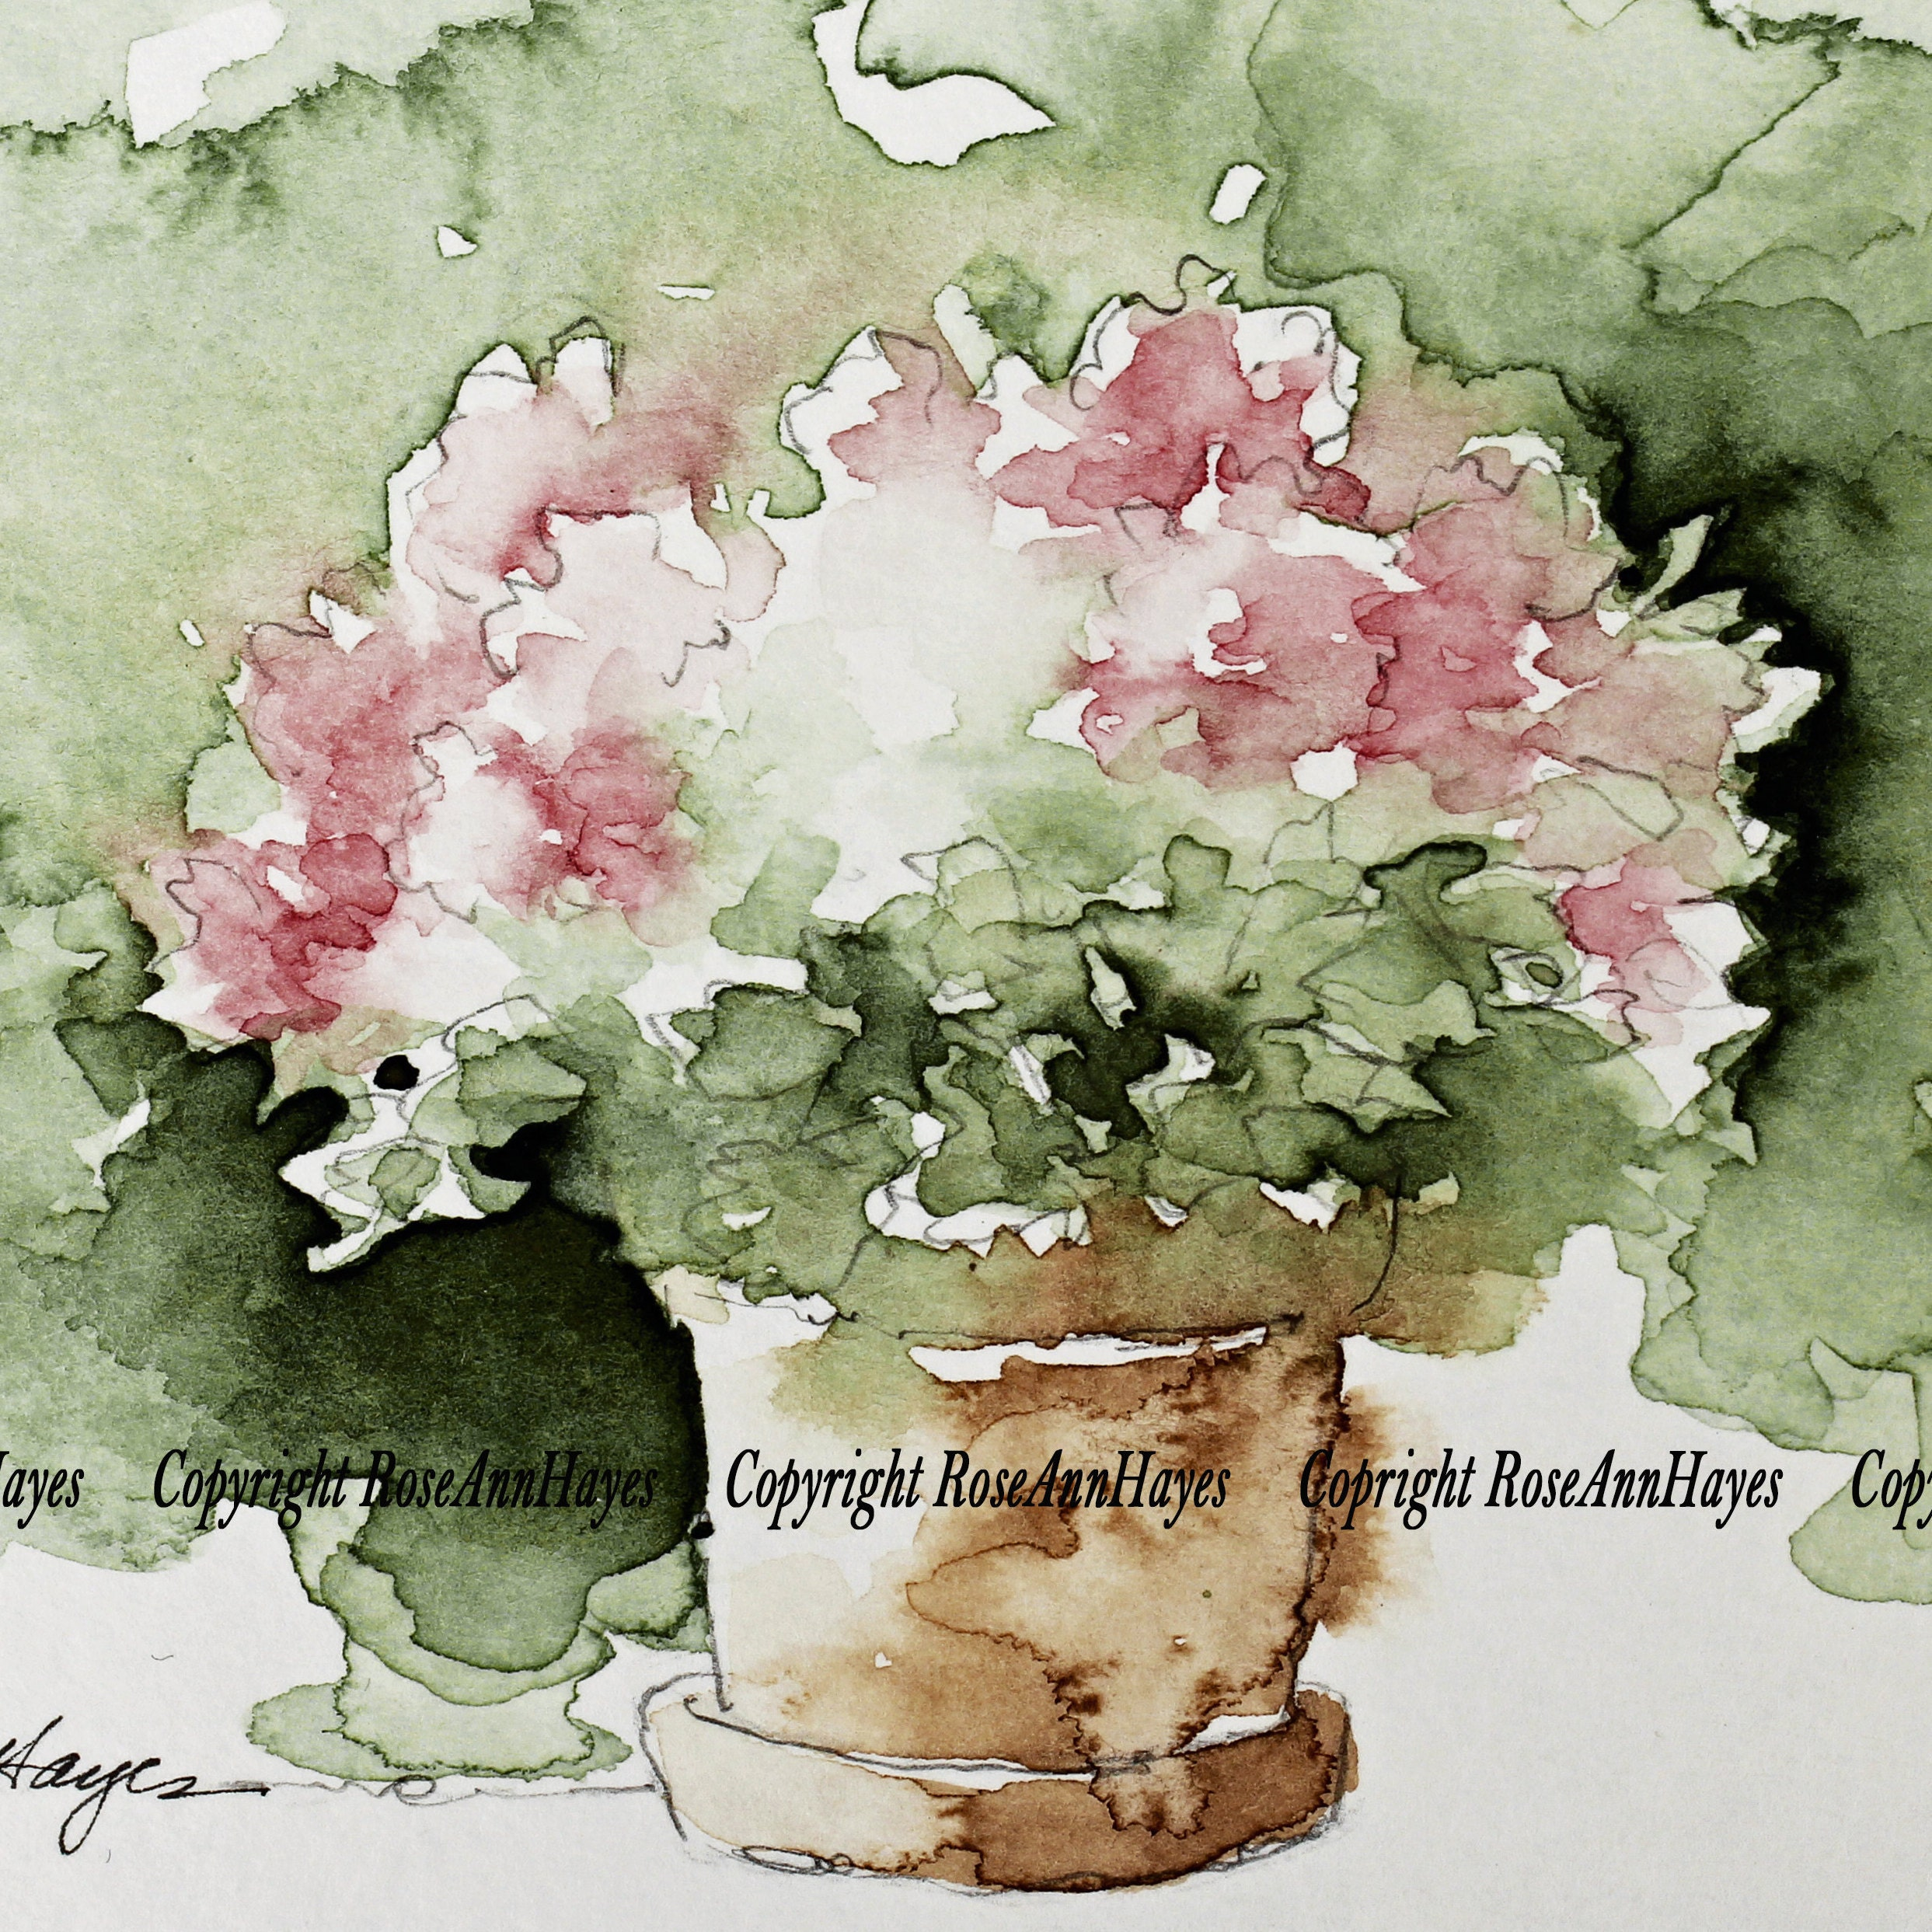 e2eb2d6e1c342 Watercolor Paintings by RoseAnn Hayes by RoseAnnHayes on Etsy